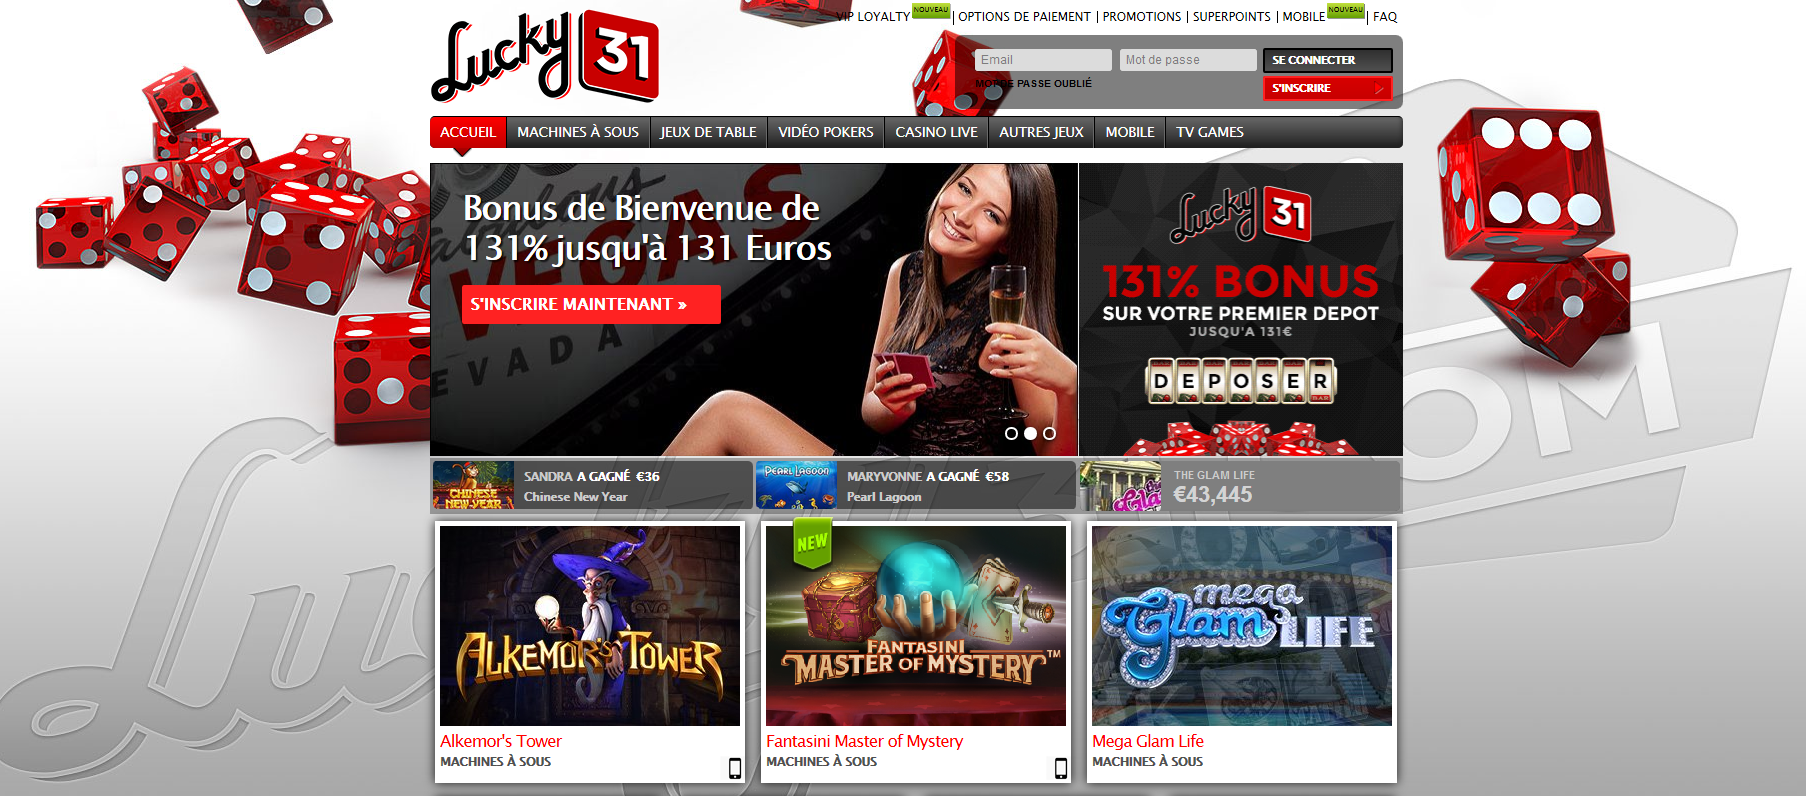 Casino en ligne mobile daniel gamez poker